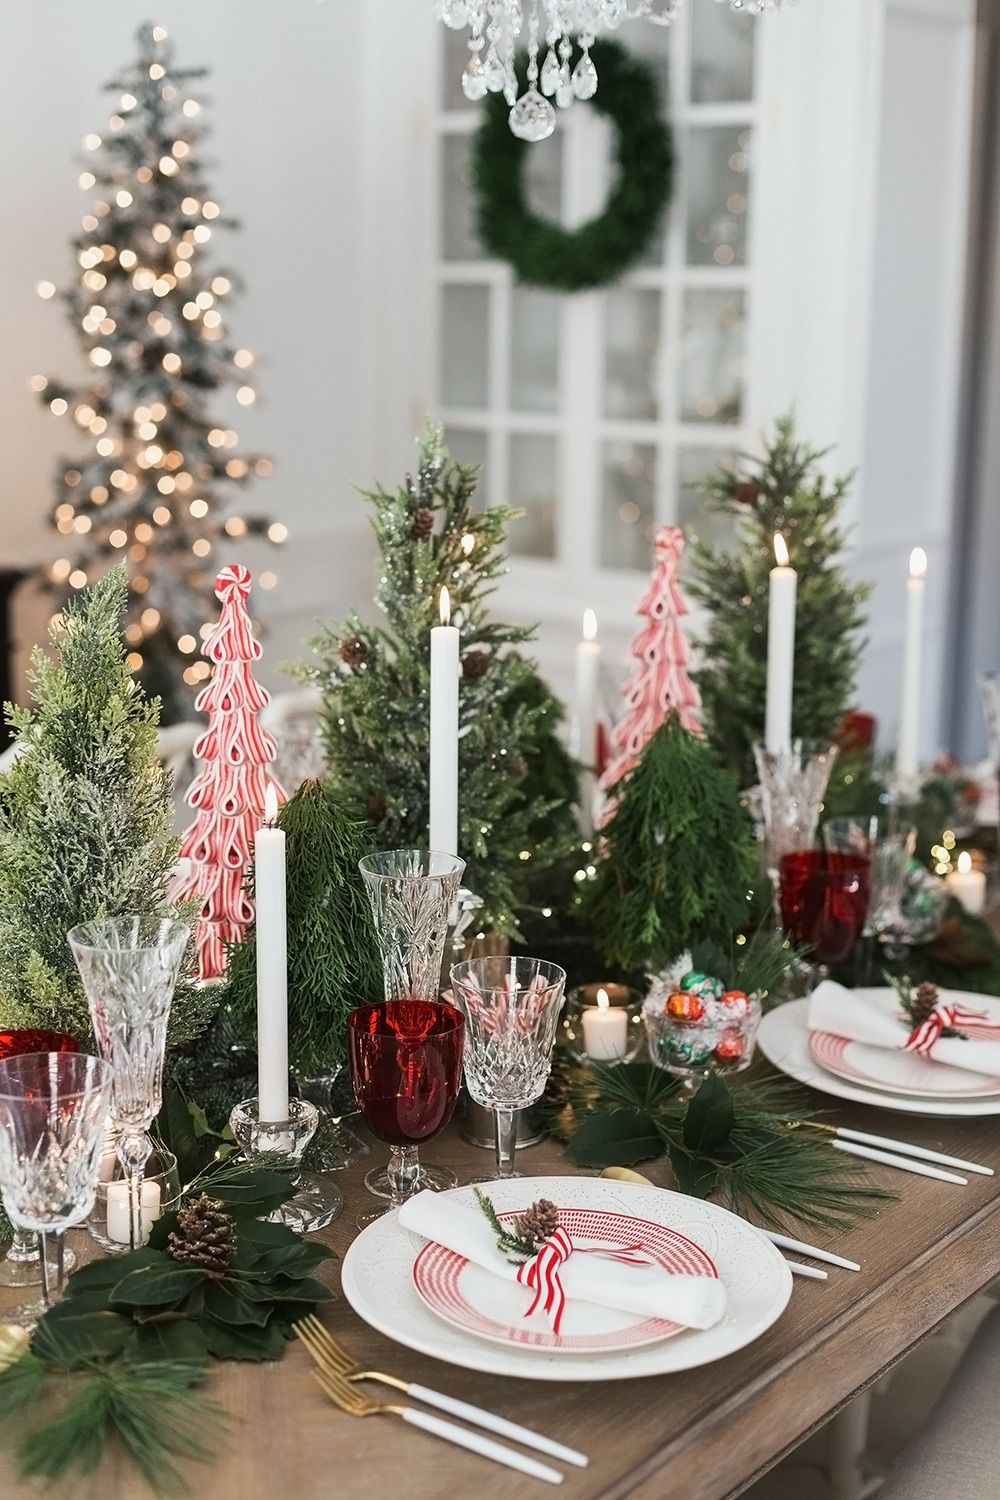 Christmas Table Setting With A Peppermint Tables Cape Theme Holidaytablescapes Tablesc Christmas Table Centerpieces Christmas Table Settings Christmas Table